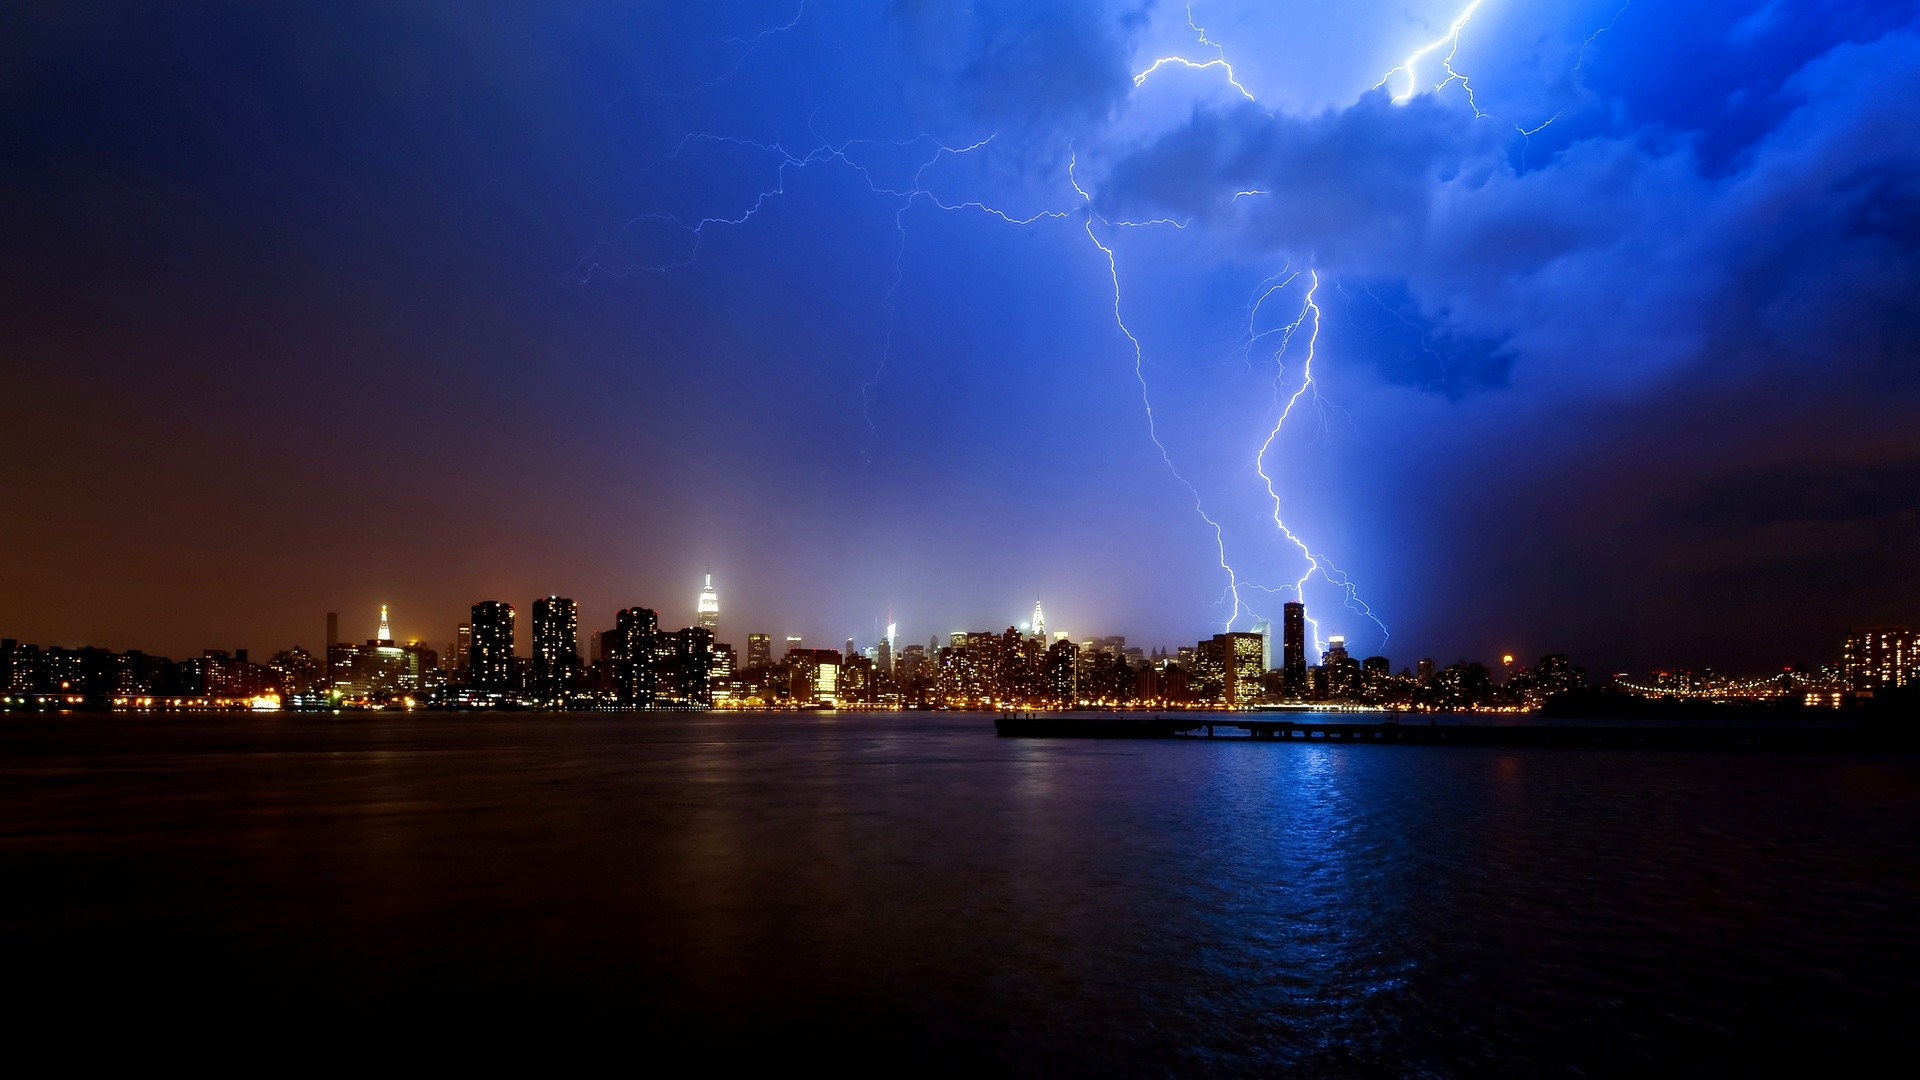 Thunder Fire HD Pictures, Thunder Storm Wallpapers – Wallpapers .